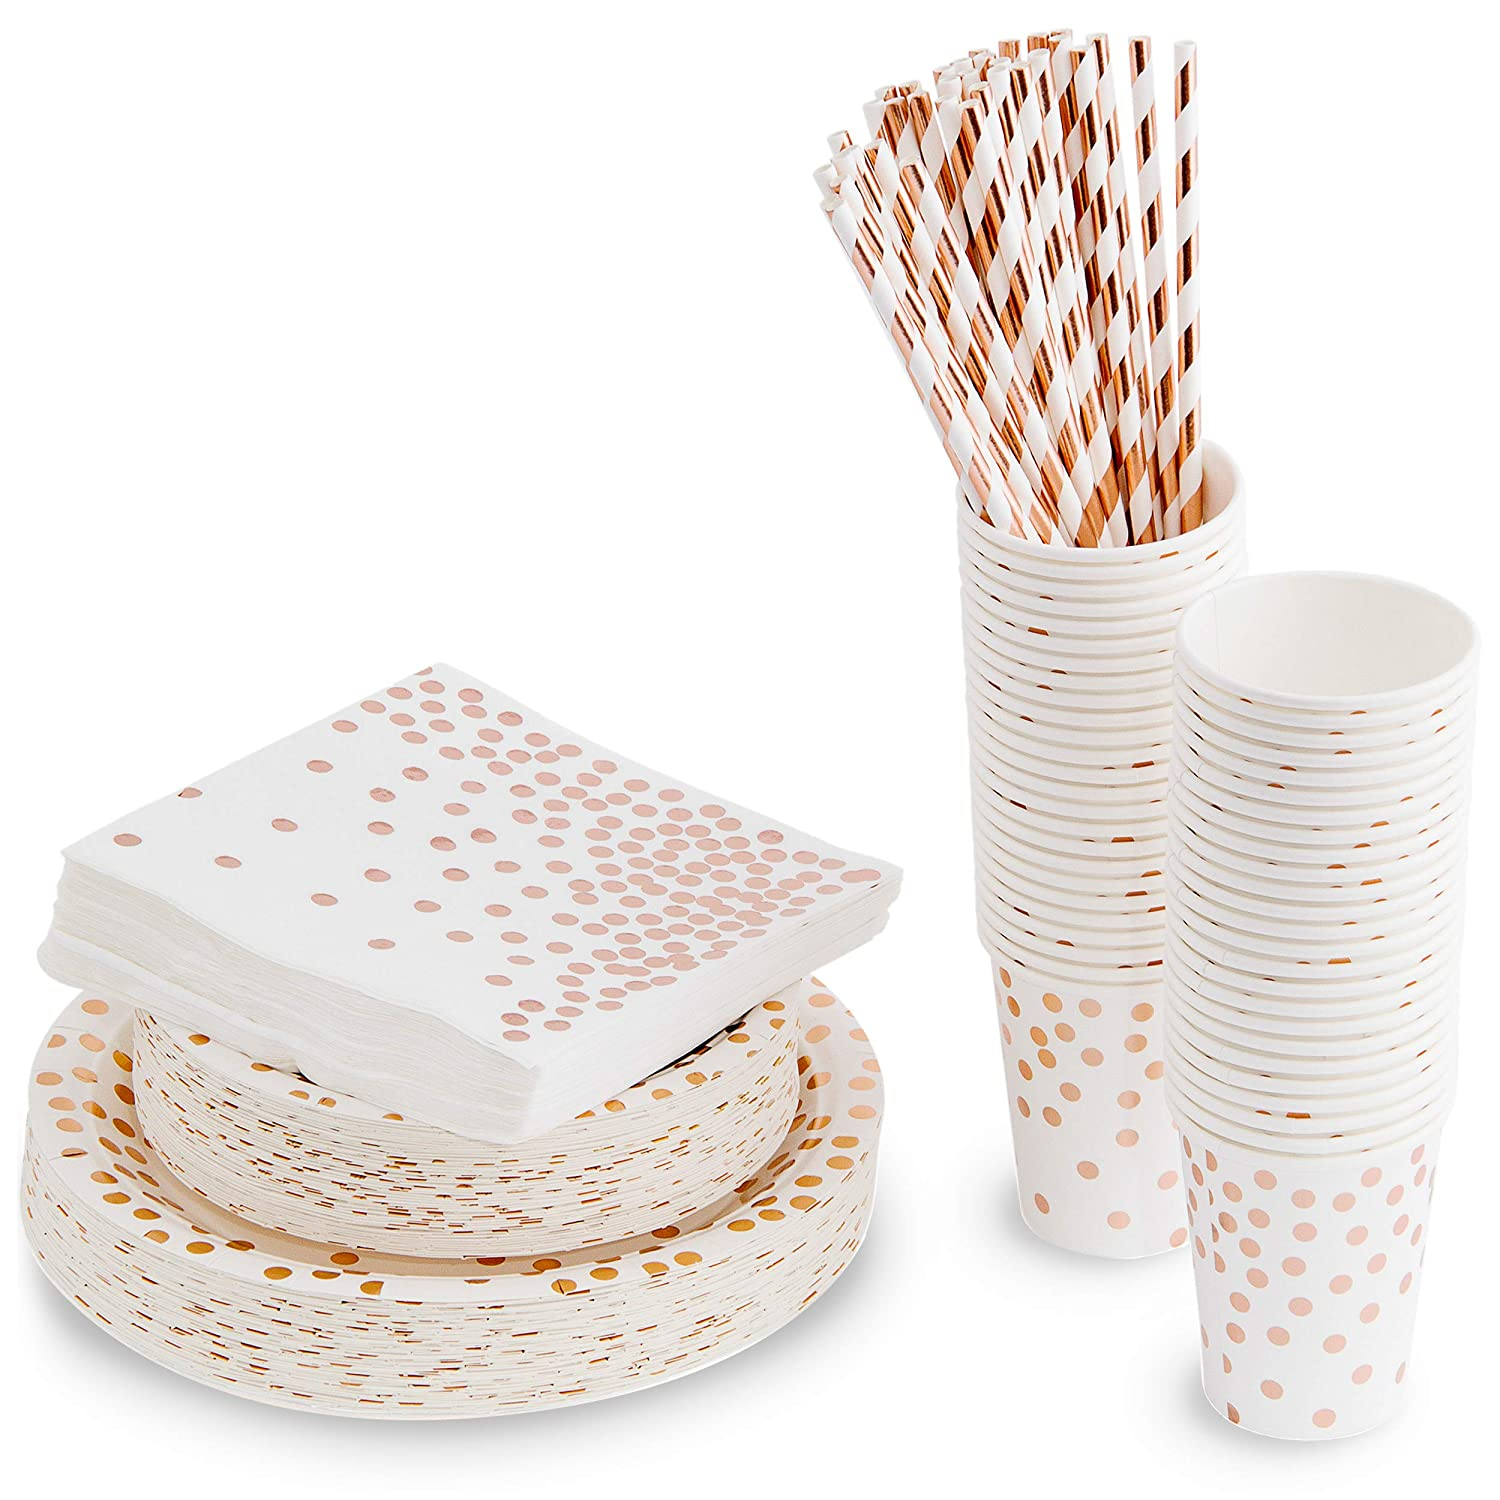 250 Piece Polka Dot Rose Gold Disposable Paper Plates And Party Supplies Includes 50 Disposable Plates 50 Dessert Plates 50 8 Ounce Cups 50 Paper Straws 50 Napkins Decorative Dinnerware Walmart Com Walmart Com